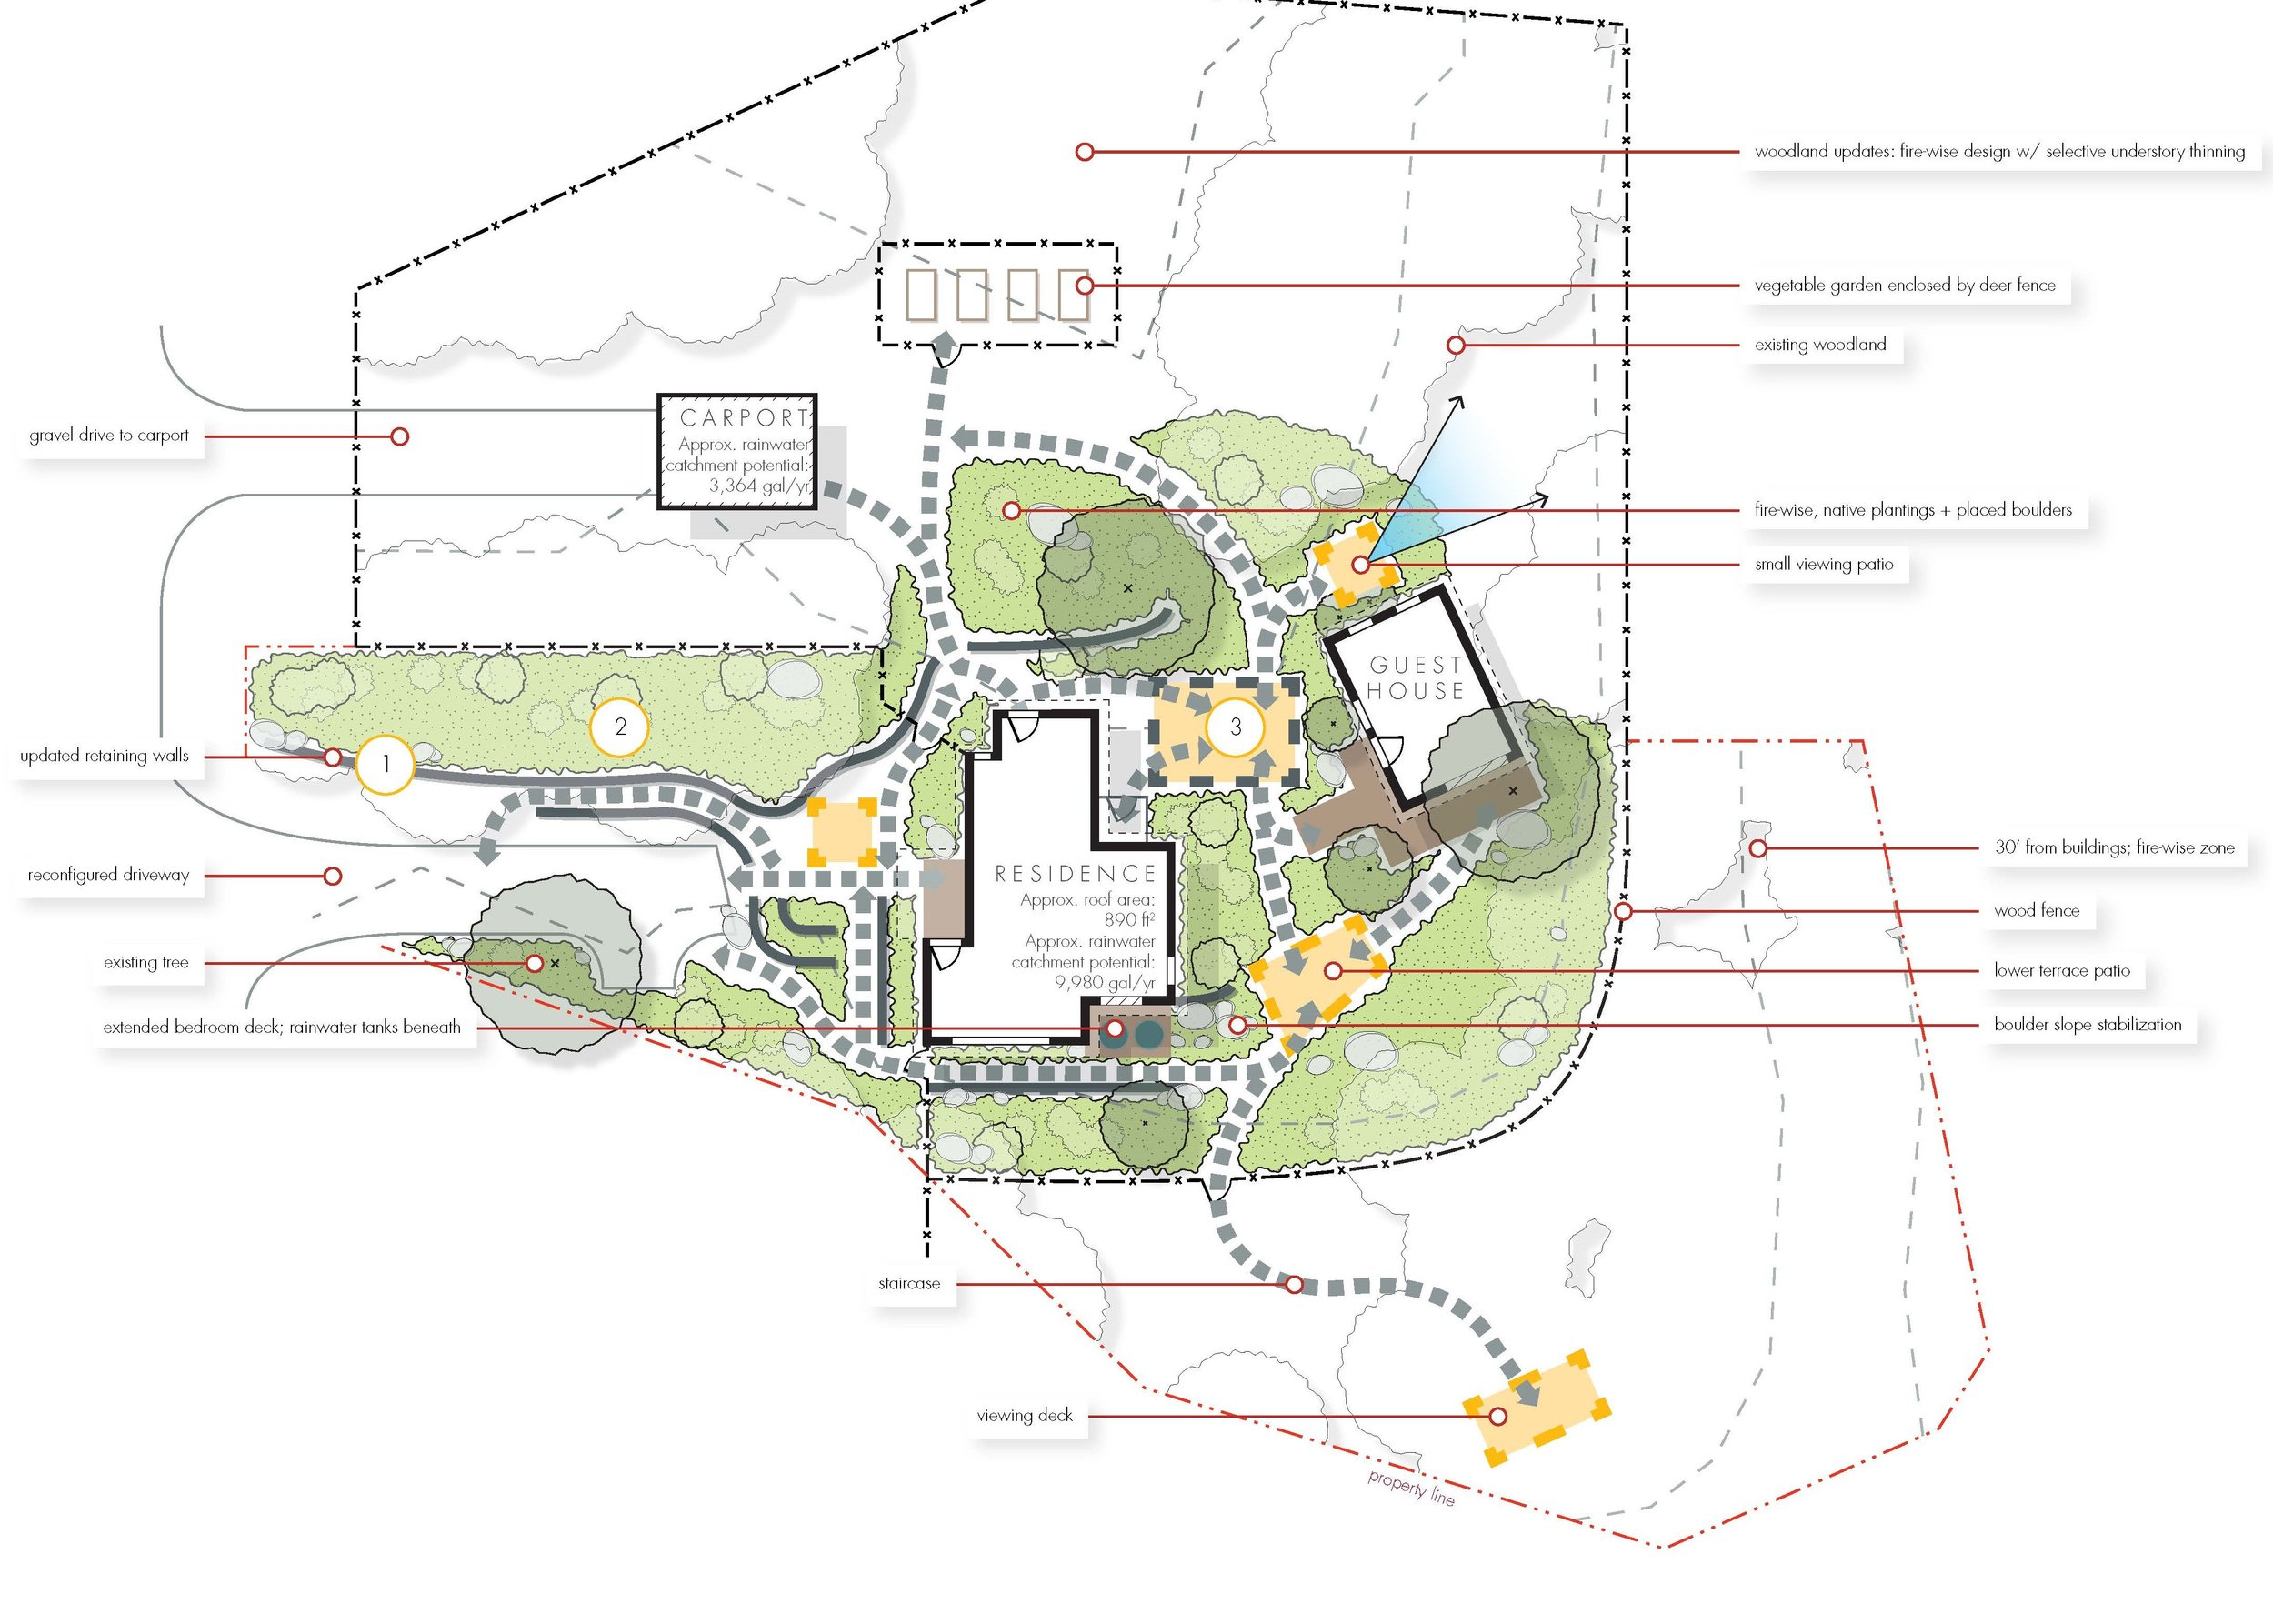 medium resolution of conceptual design site planning landscape architecture residential example nbsp